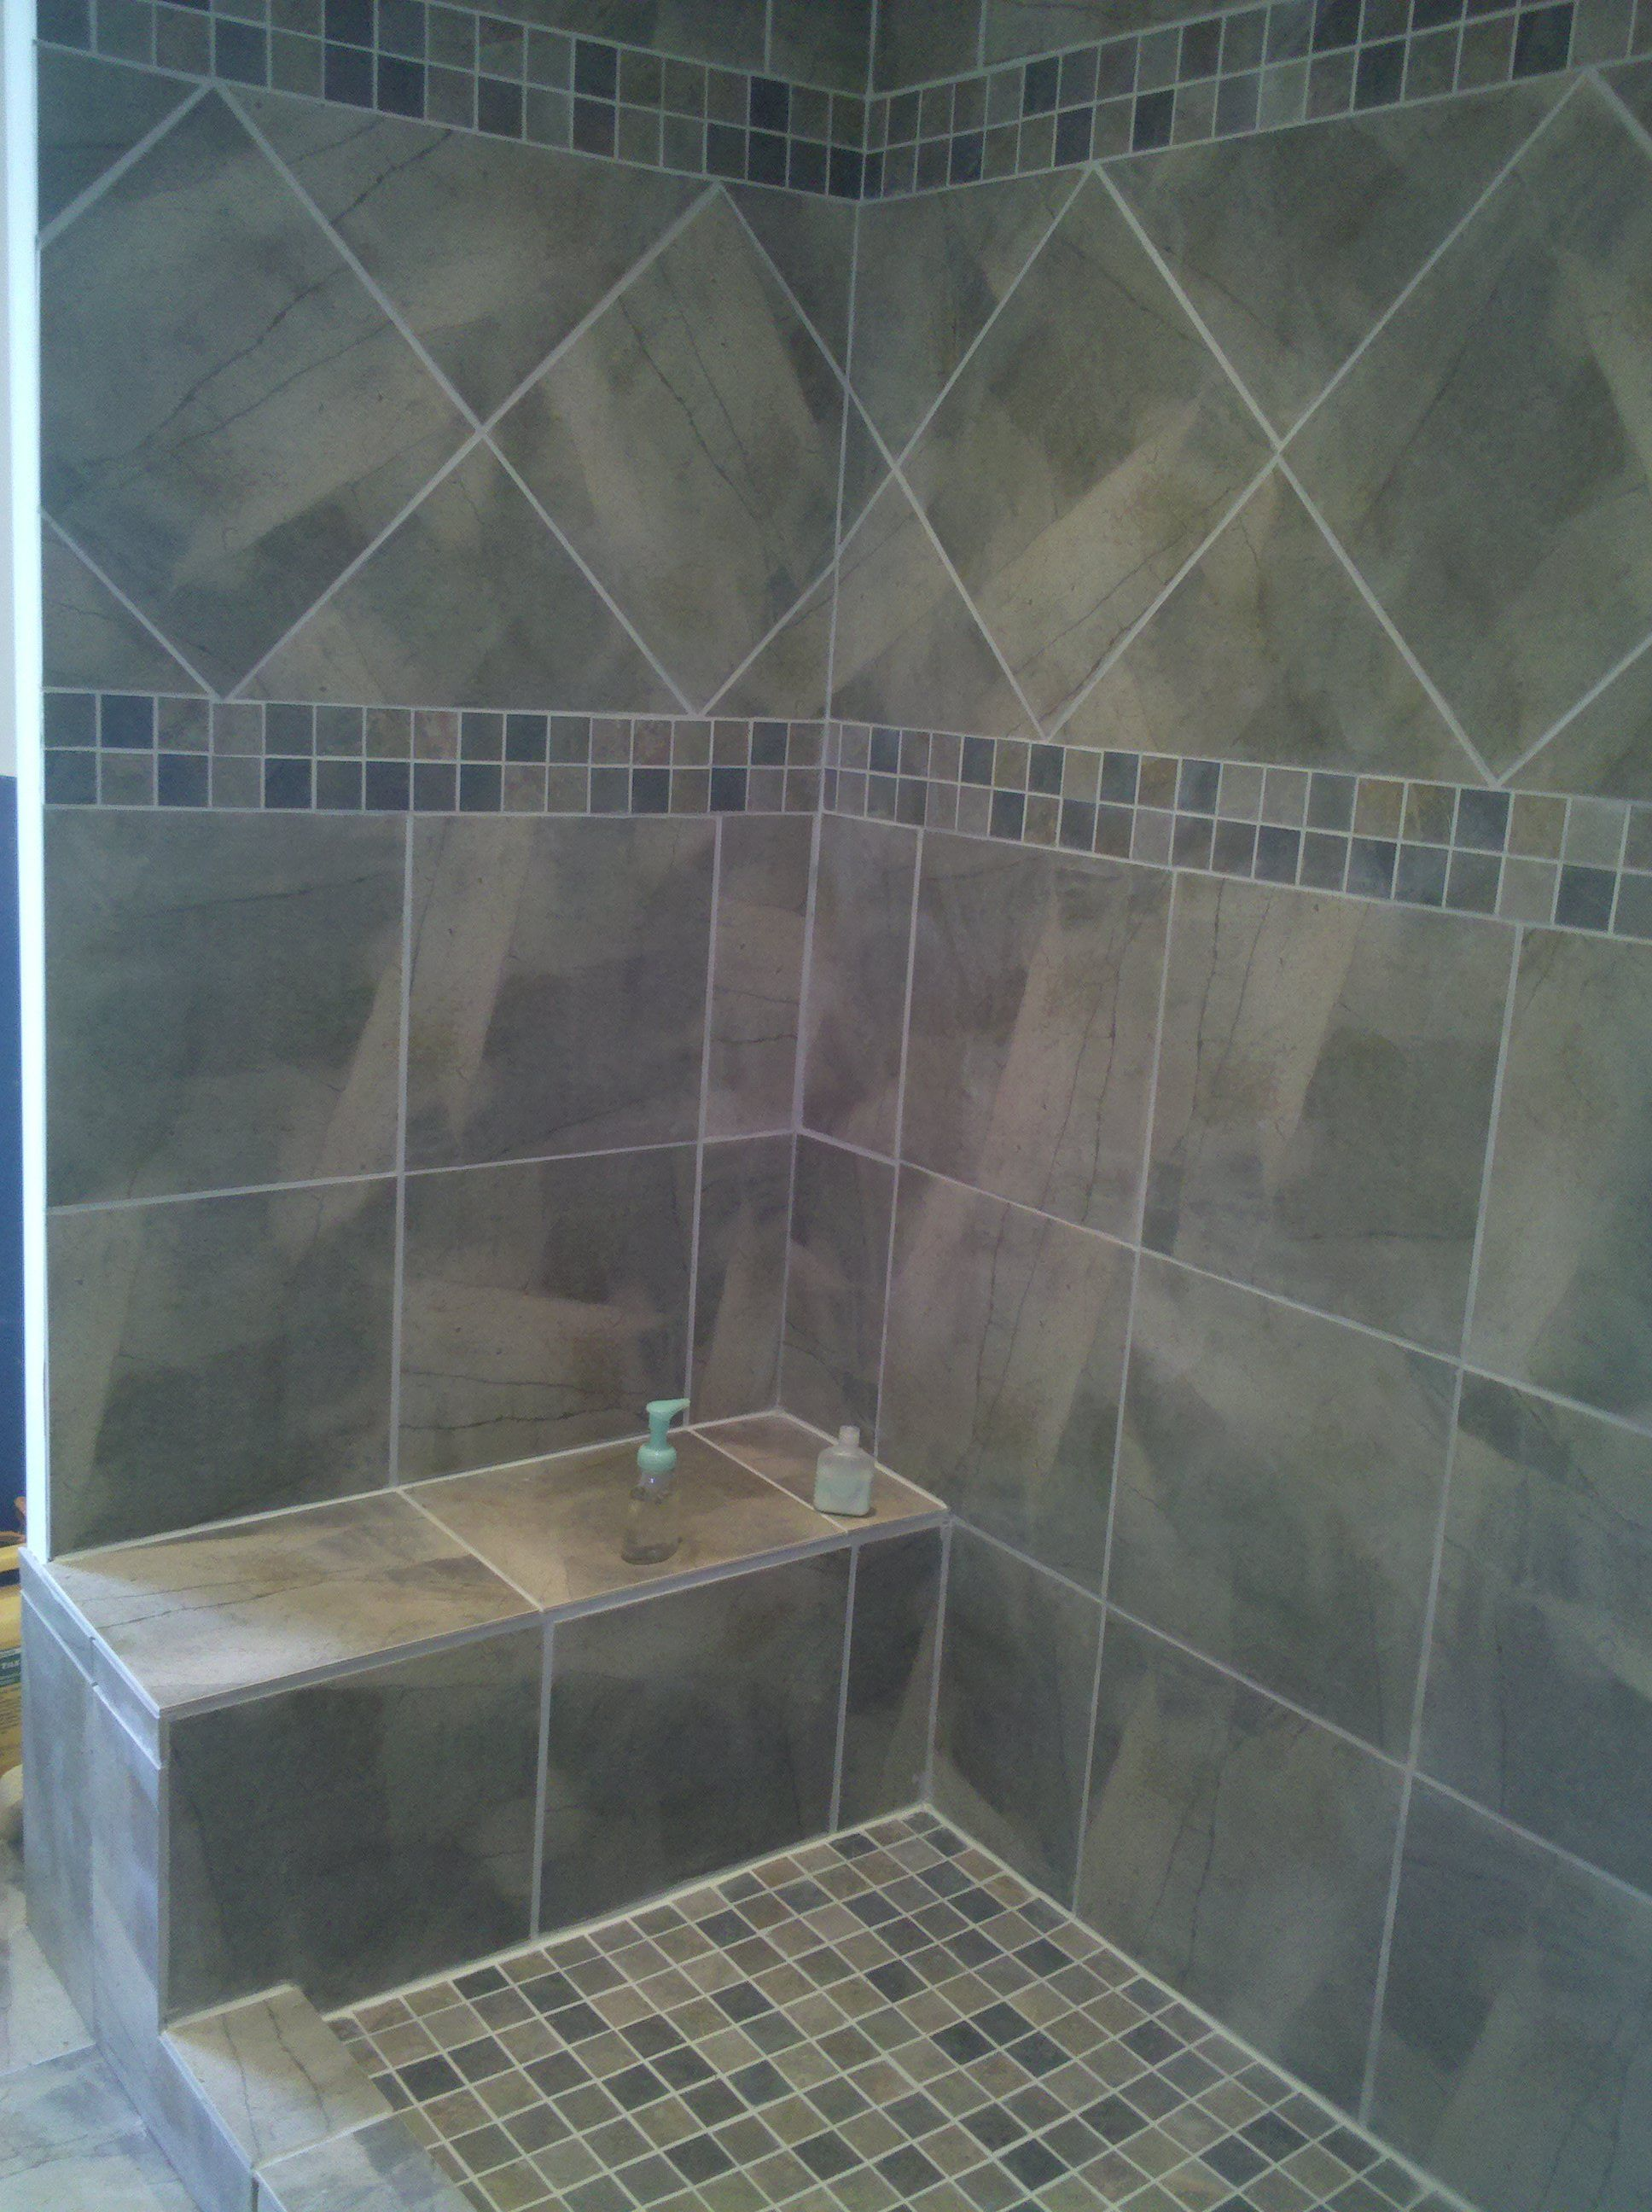 Shower Tile Patterns On Pinterest Shower Tile Designs Vertical Shower Tile And Bathroom